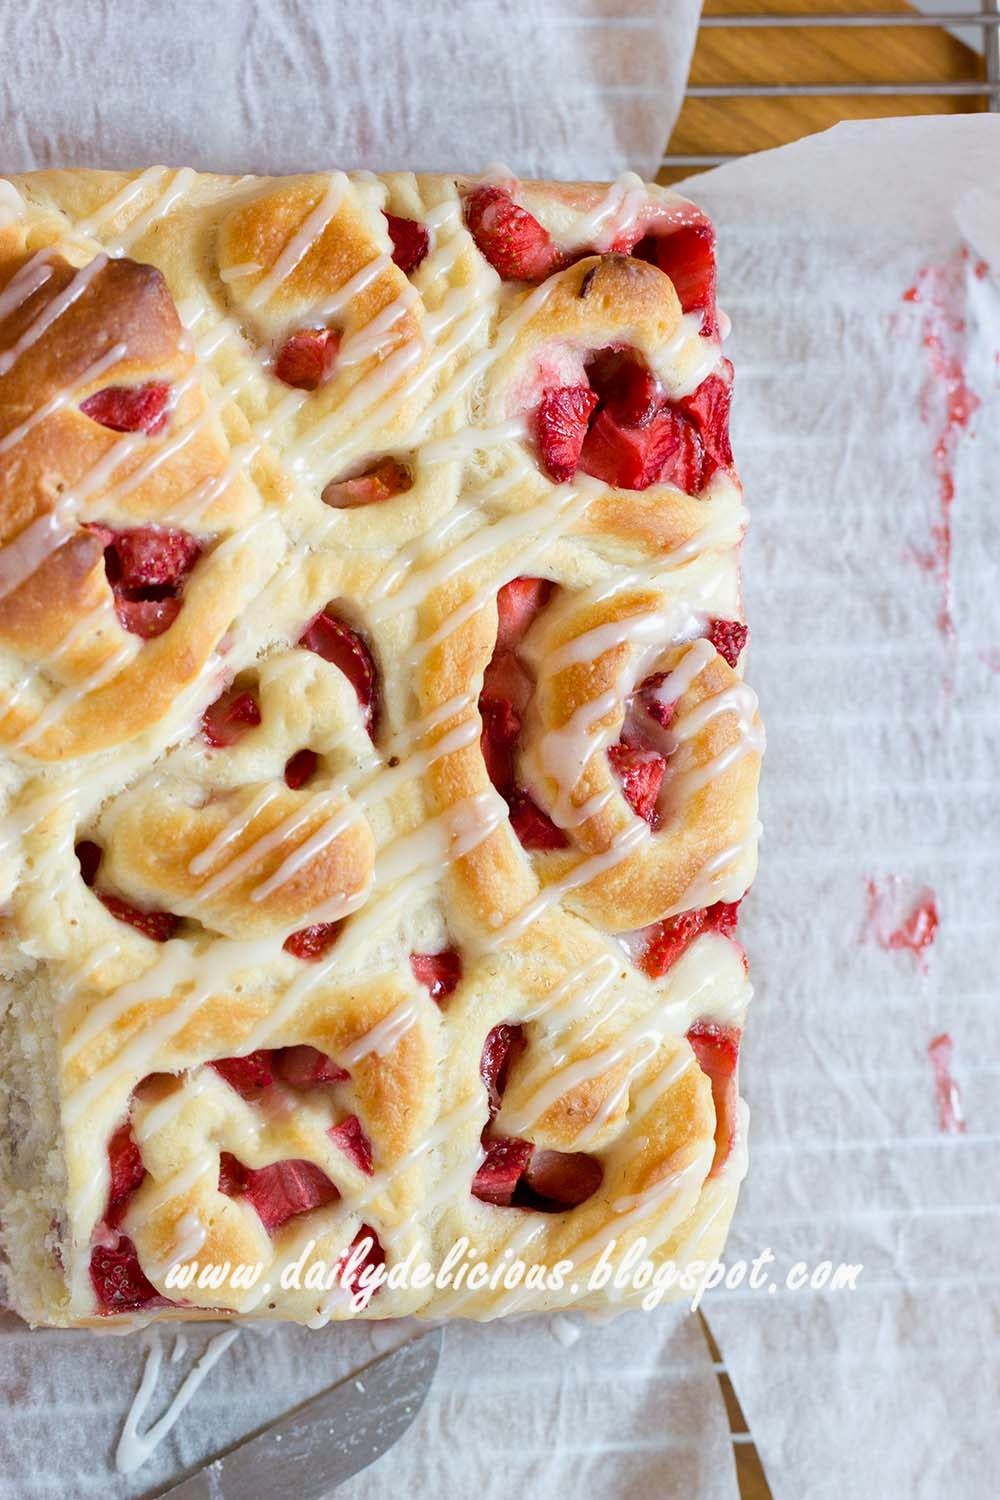 dailydelicious: Fresh Strawberry Bread